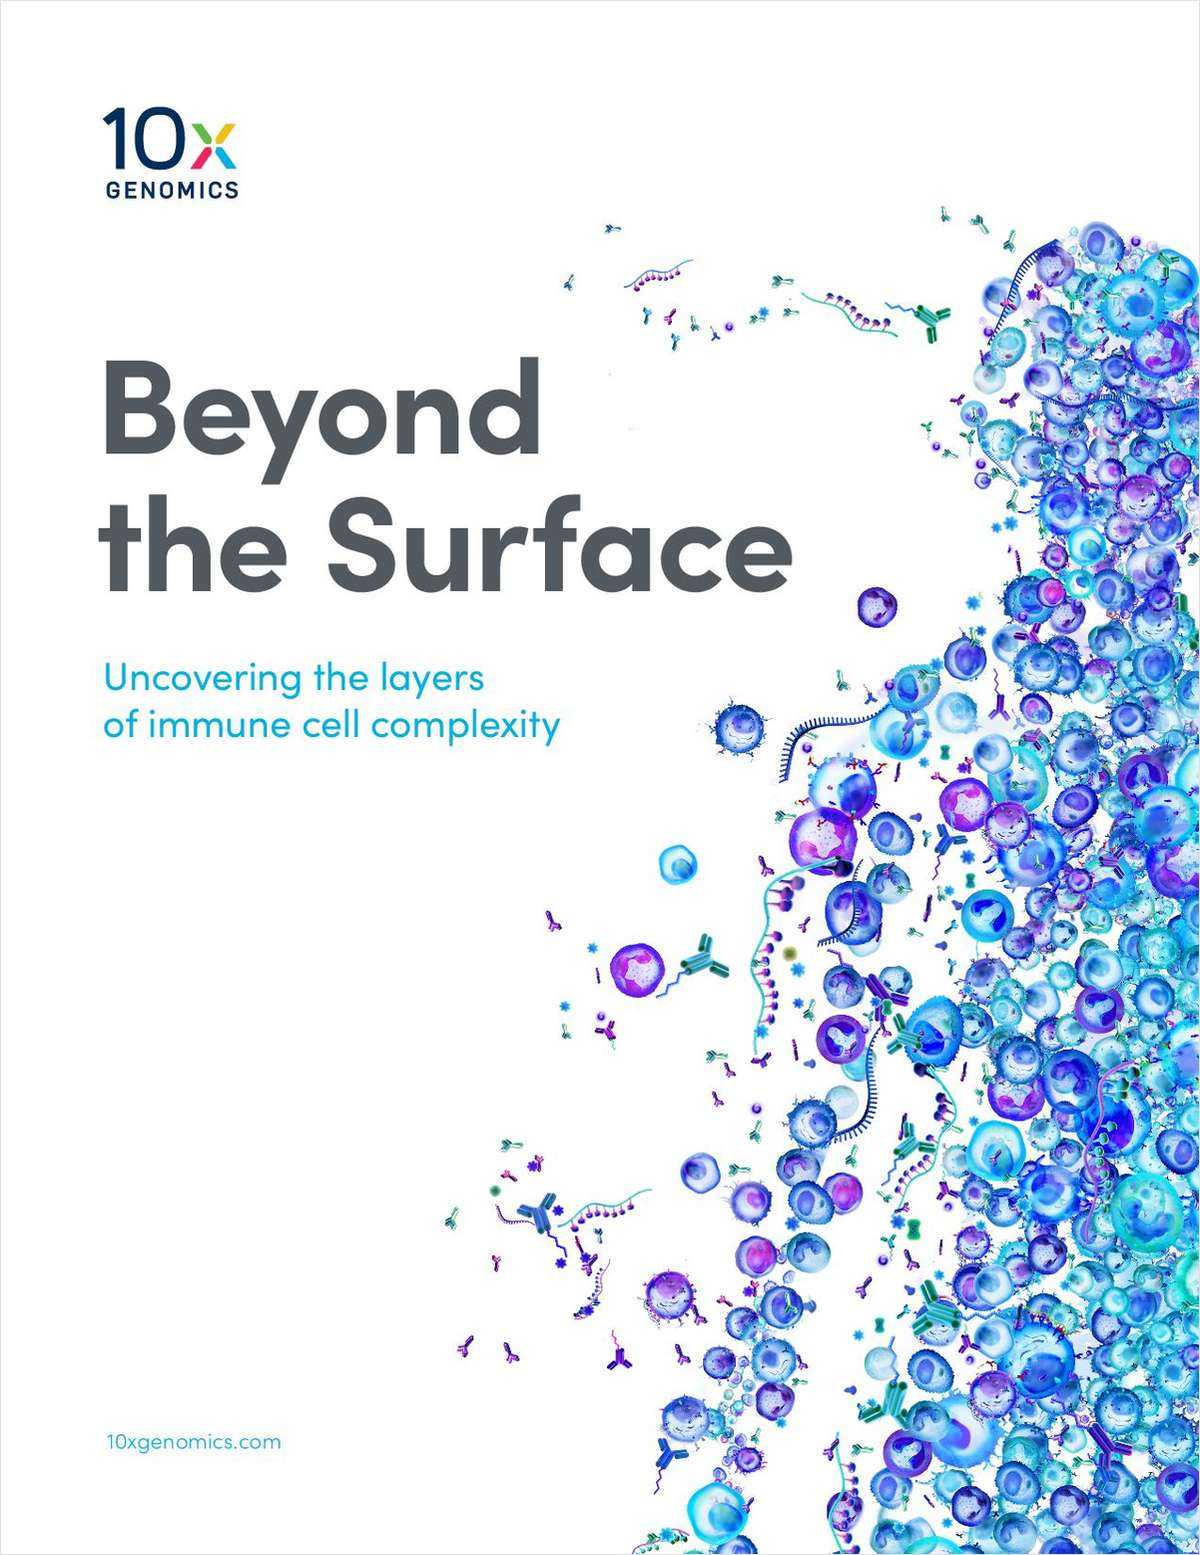 Beyond the Surface: Uncovering the Layers of Immune Cell Complexity